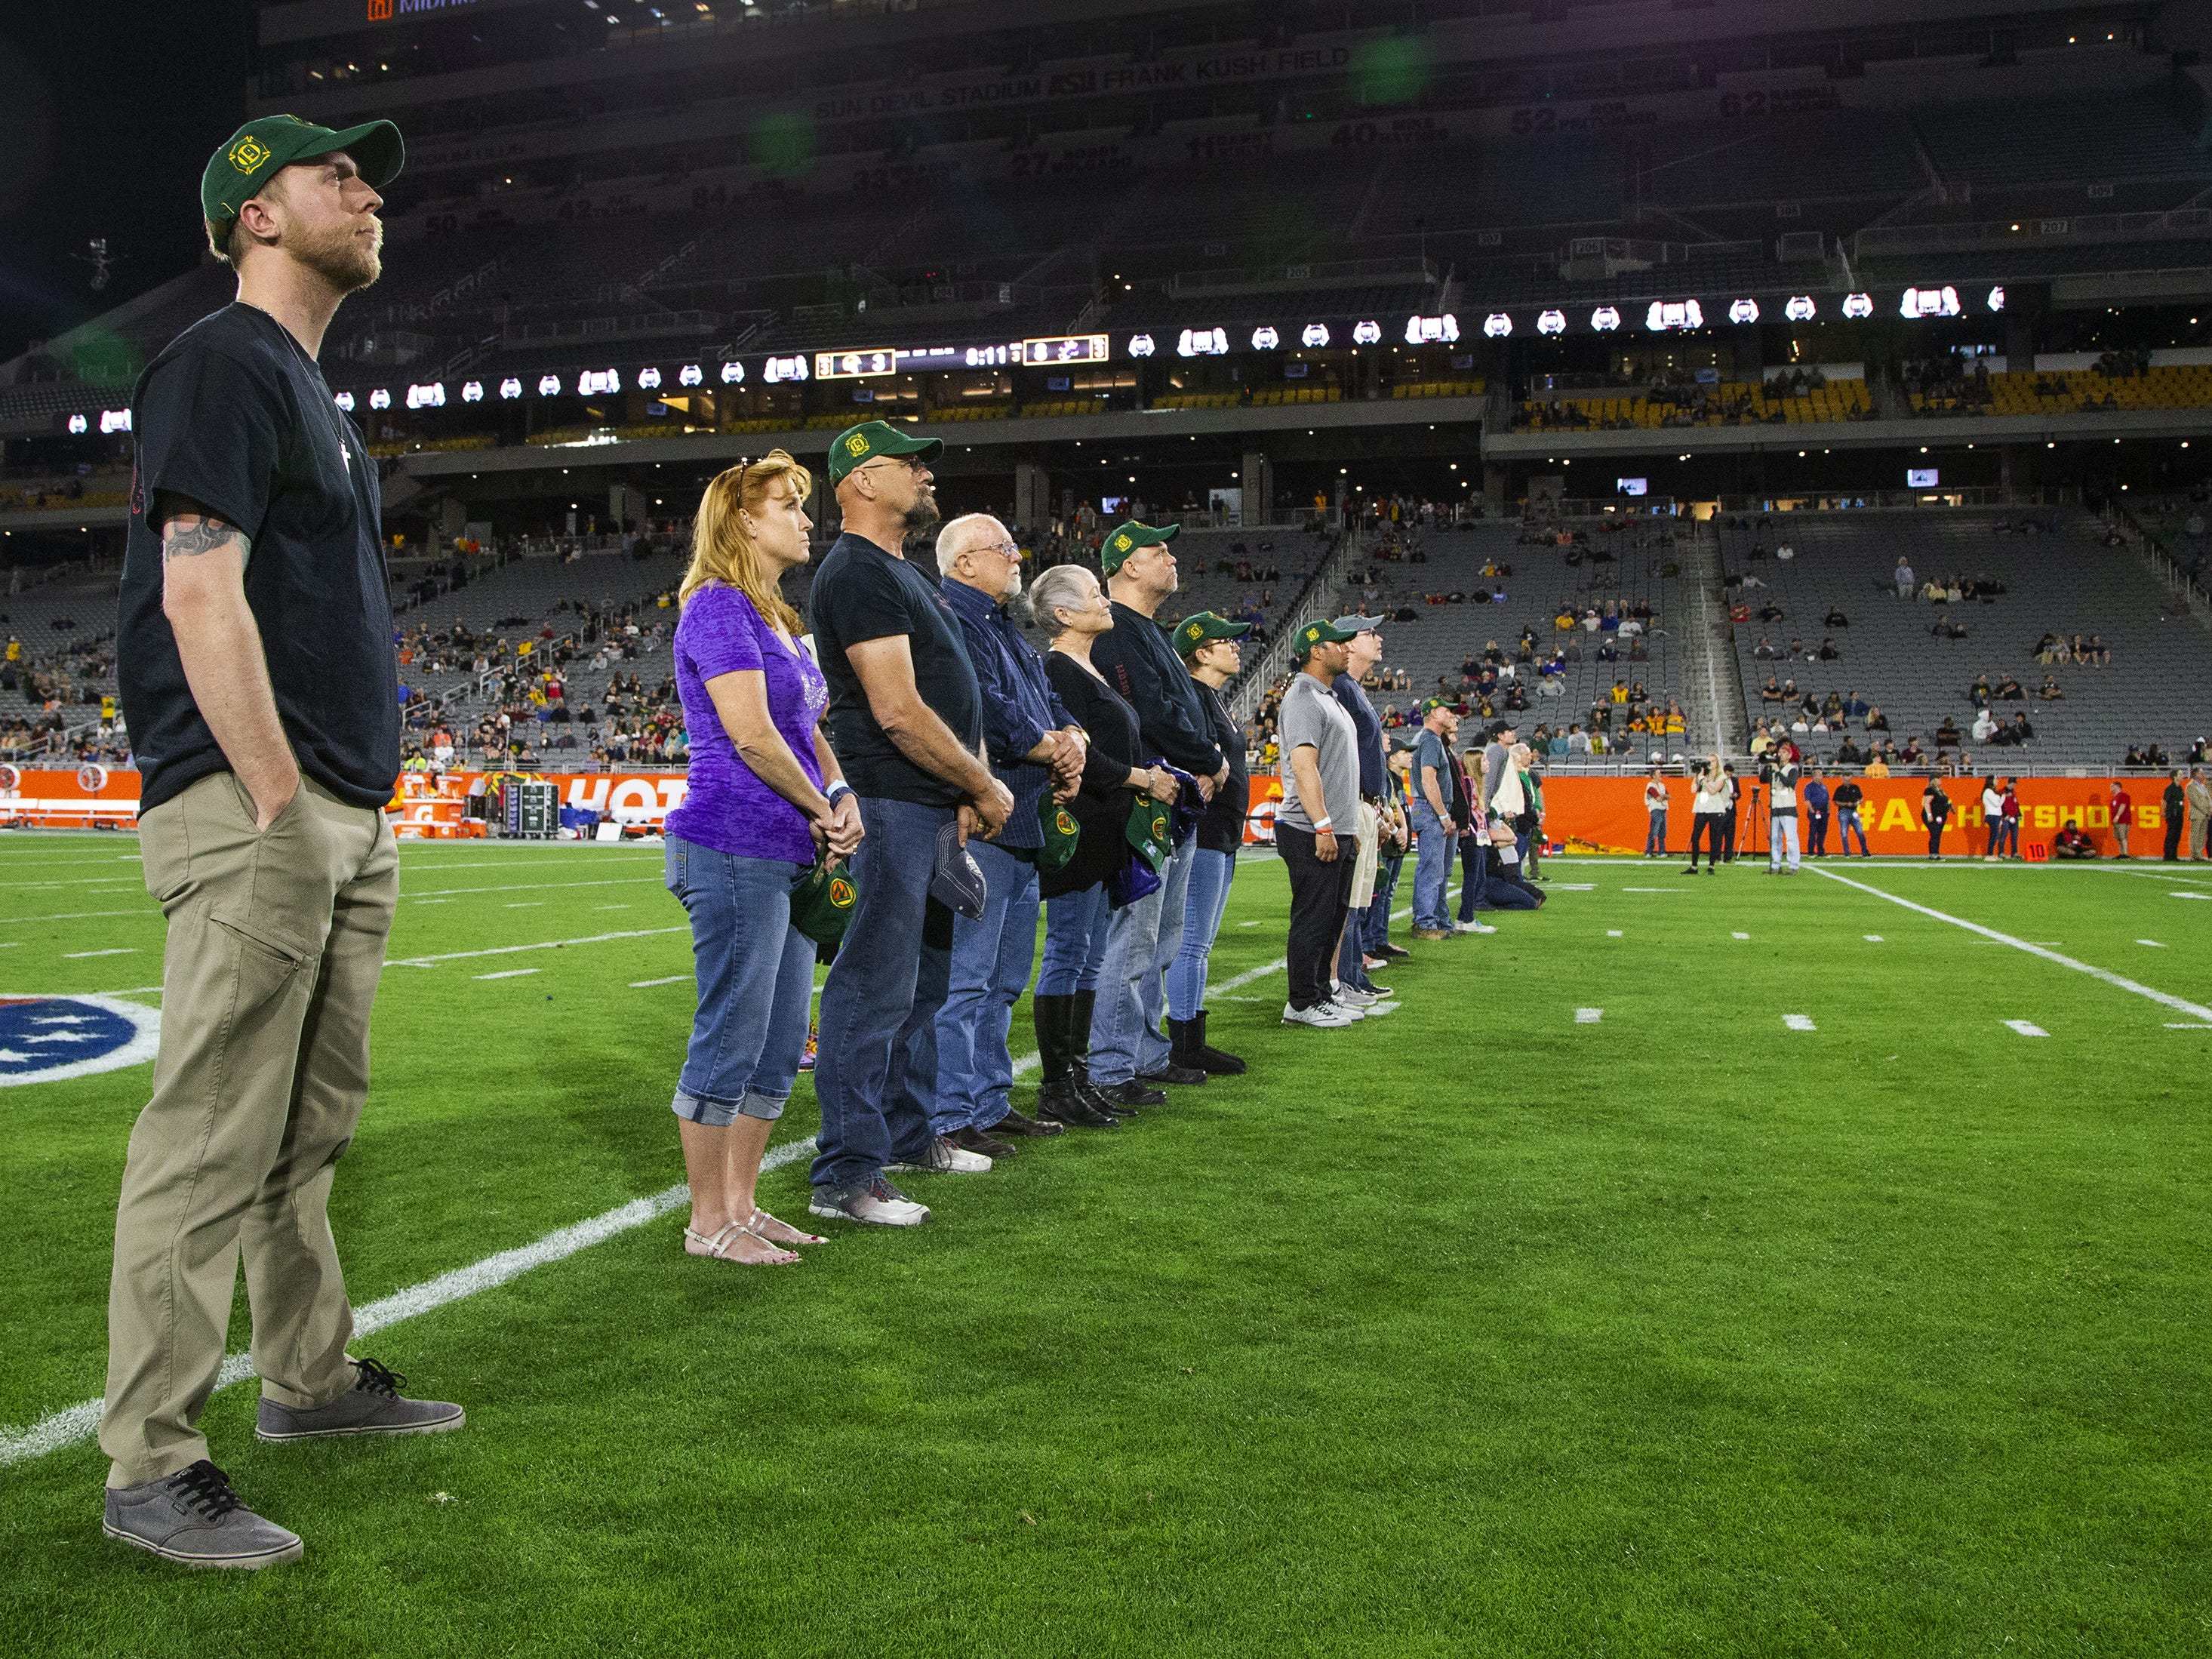 Brendan McDonough, the lone-surviving member of the Granite Mountain Hotshots, left, and family members of the crew,  watch a tribute on the jumbotron while being honored at halftime of the Arizona Hotshots and Atlanta Legends football game at Sun Devil Stadium, Sunday, March 3, 2019.  A giant banner was unfurled, retiring the number 19 in honor of the fallen firefighters.